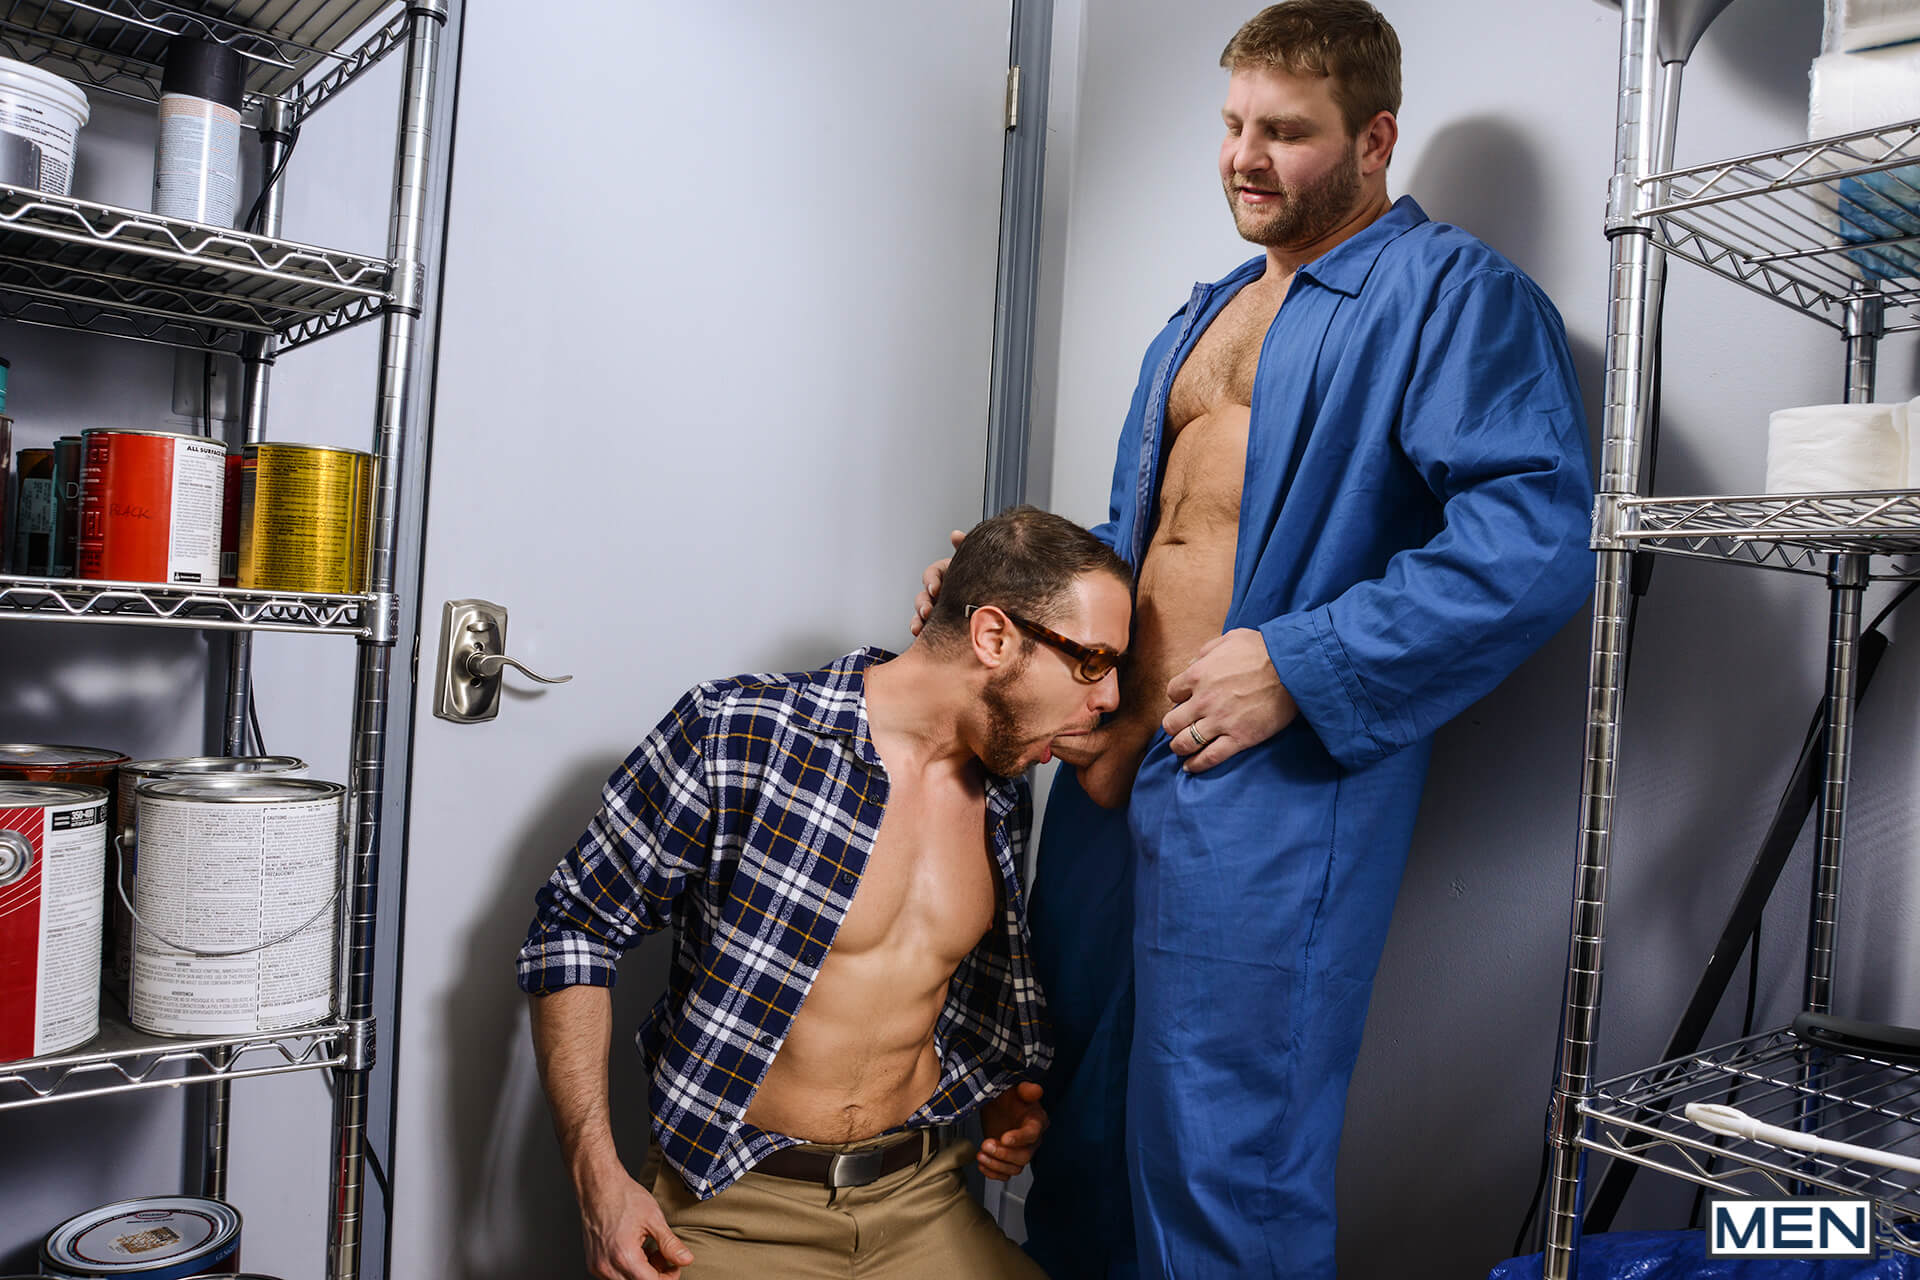 men big dicks at school janitors closet part 2 brendan phillips colby jansen gay porn blog image 12